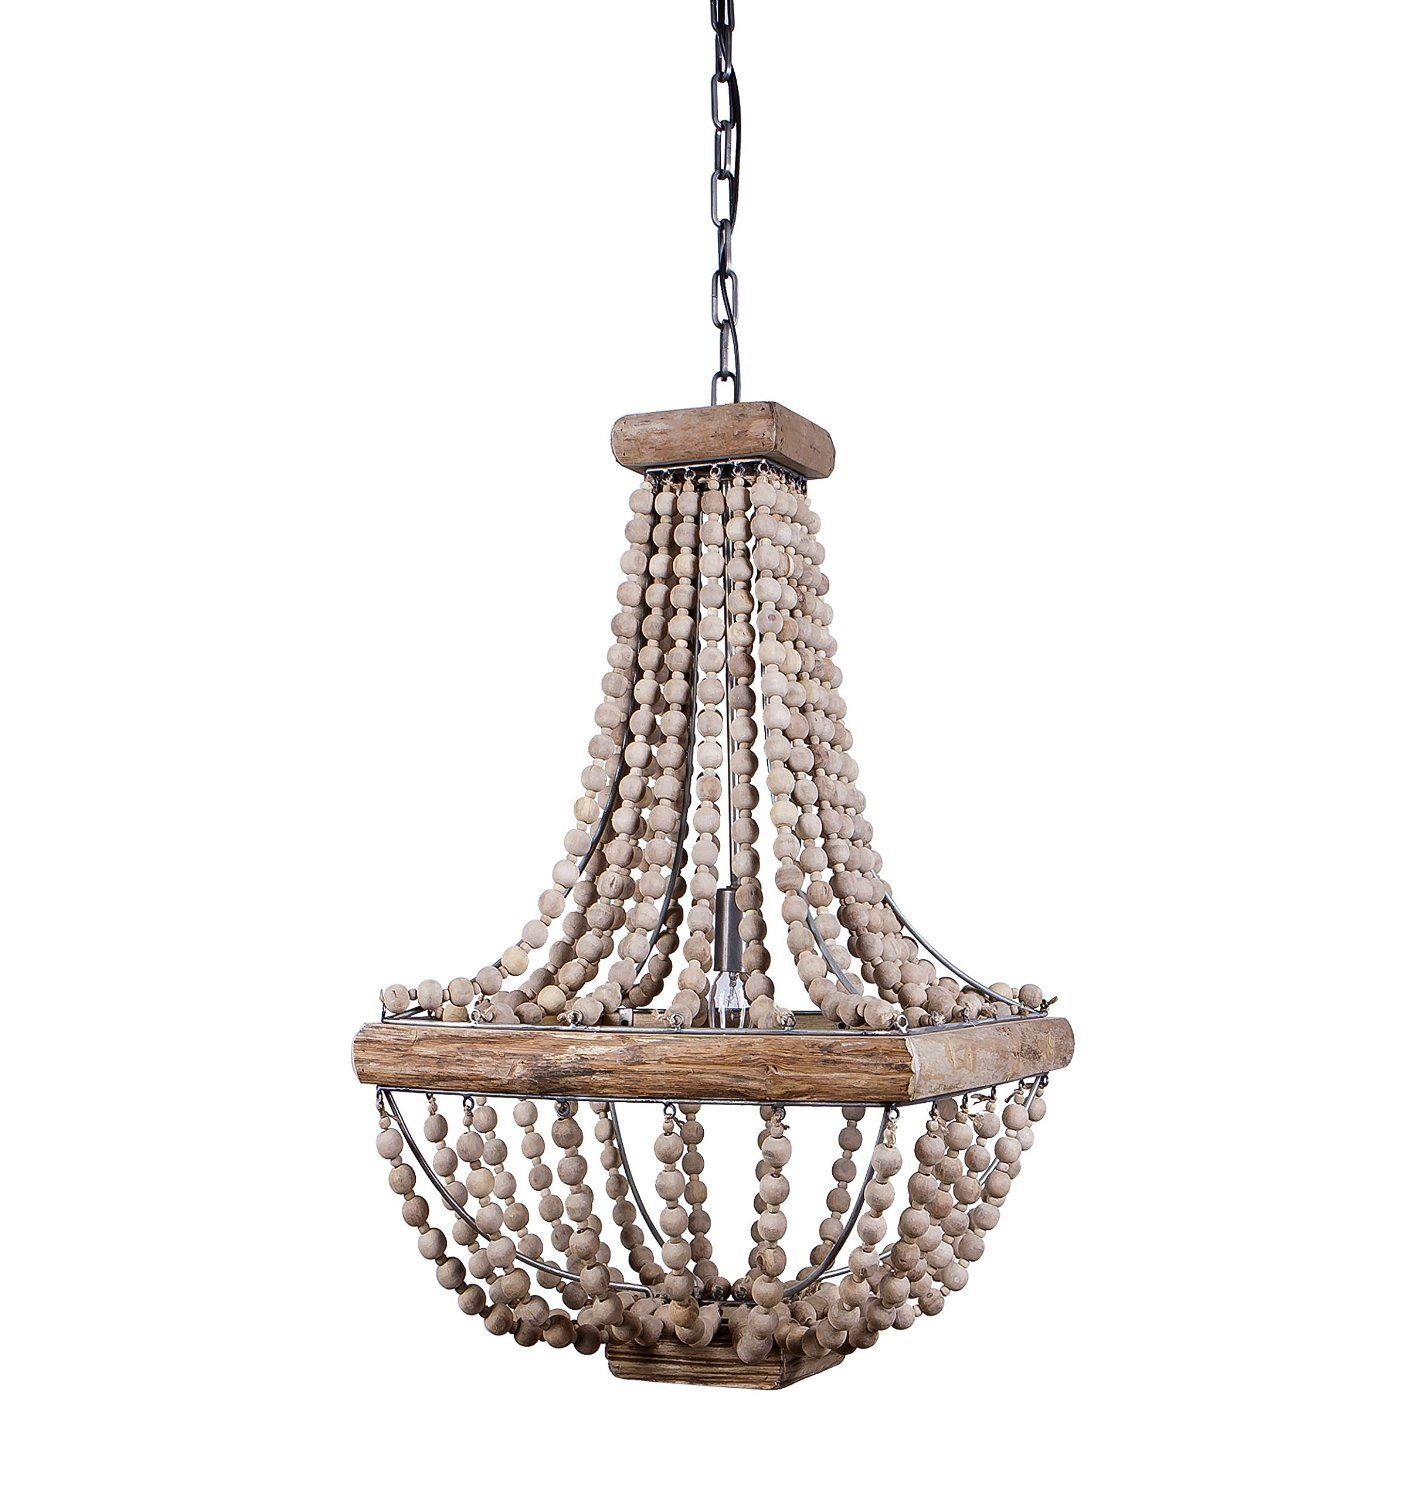 Square empire wood bead chandelier.